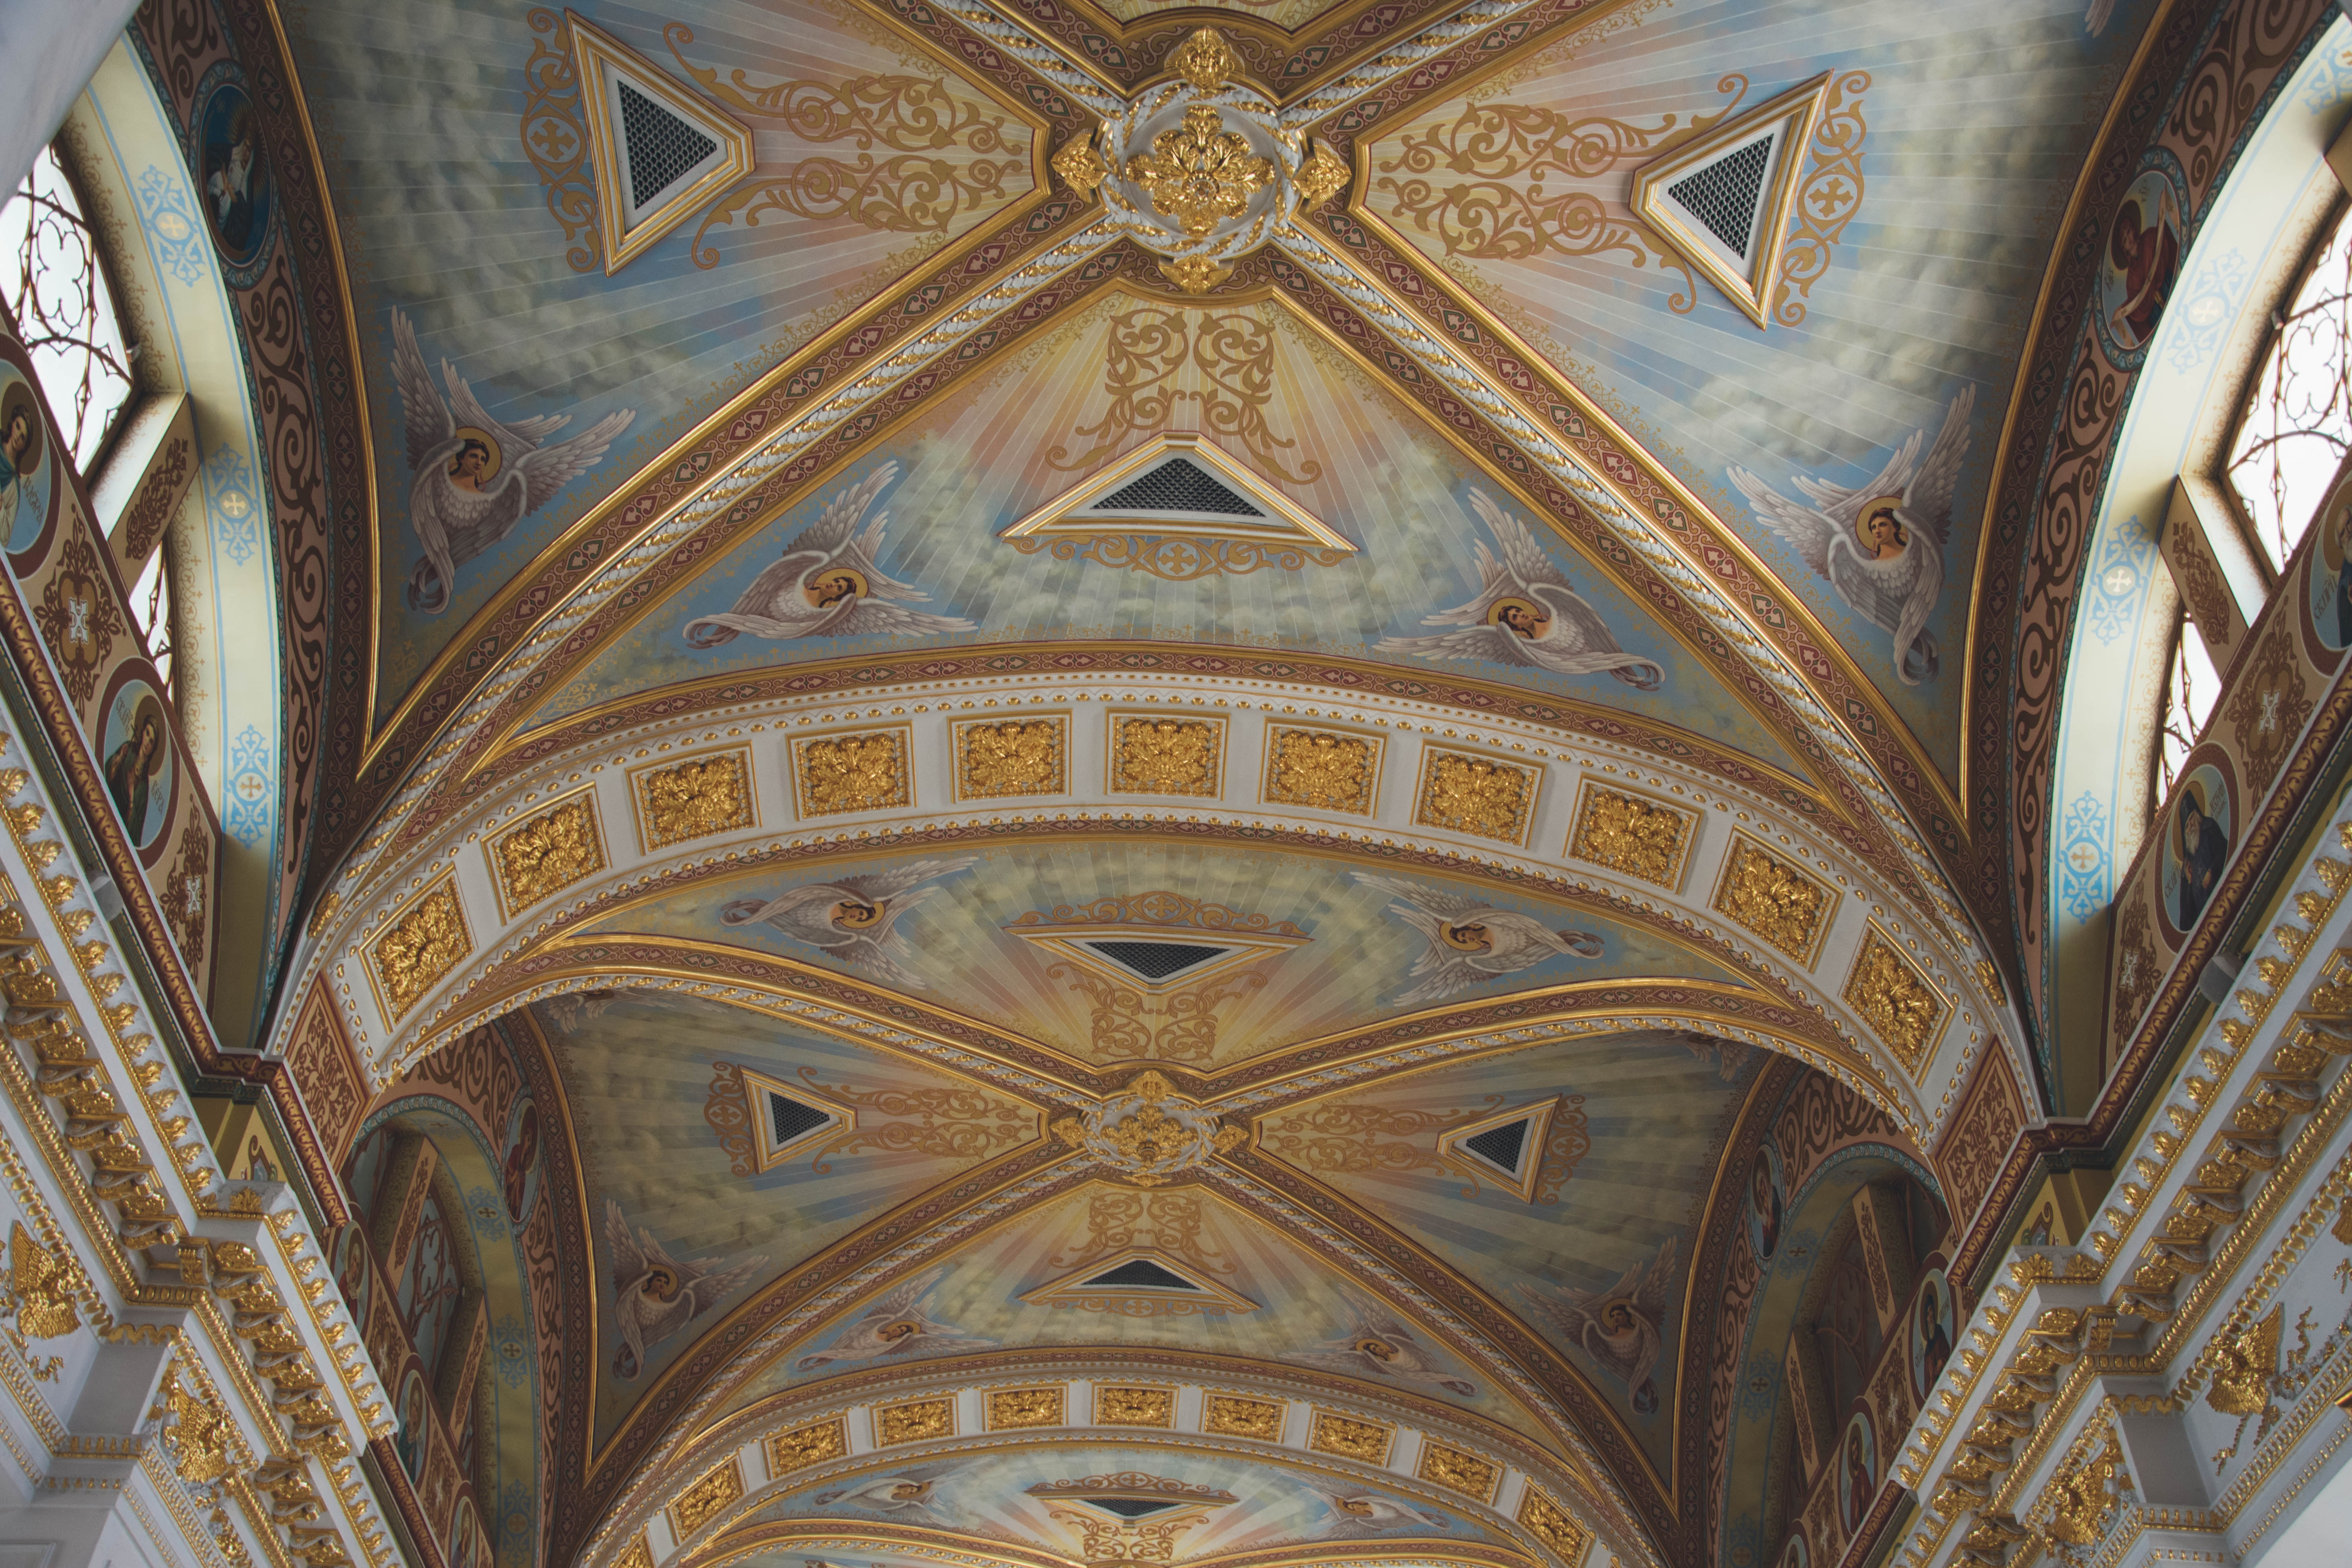 worm's eye view of ceiling during daytime